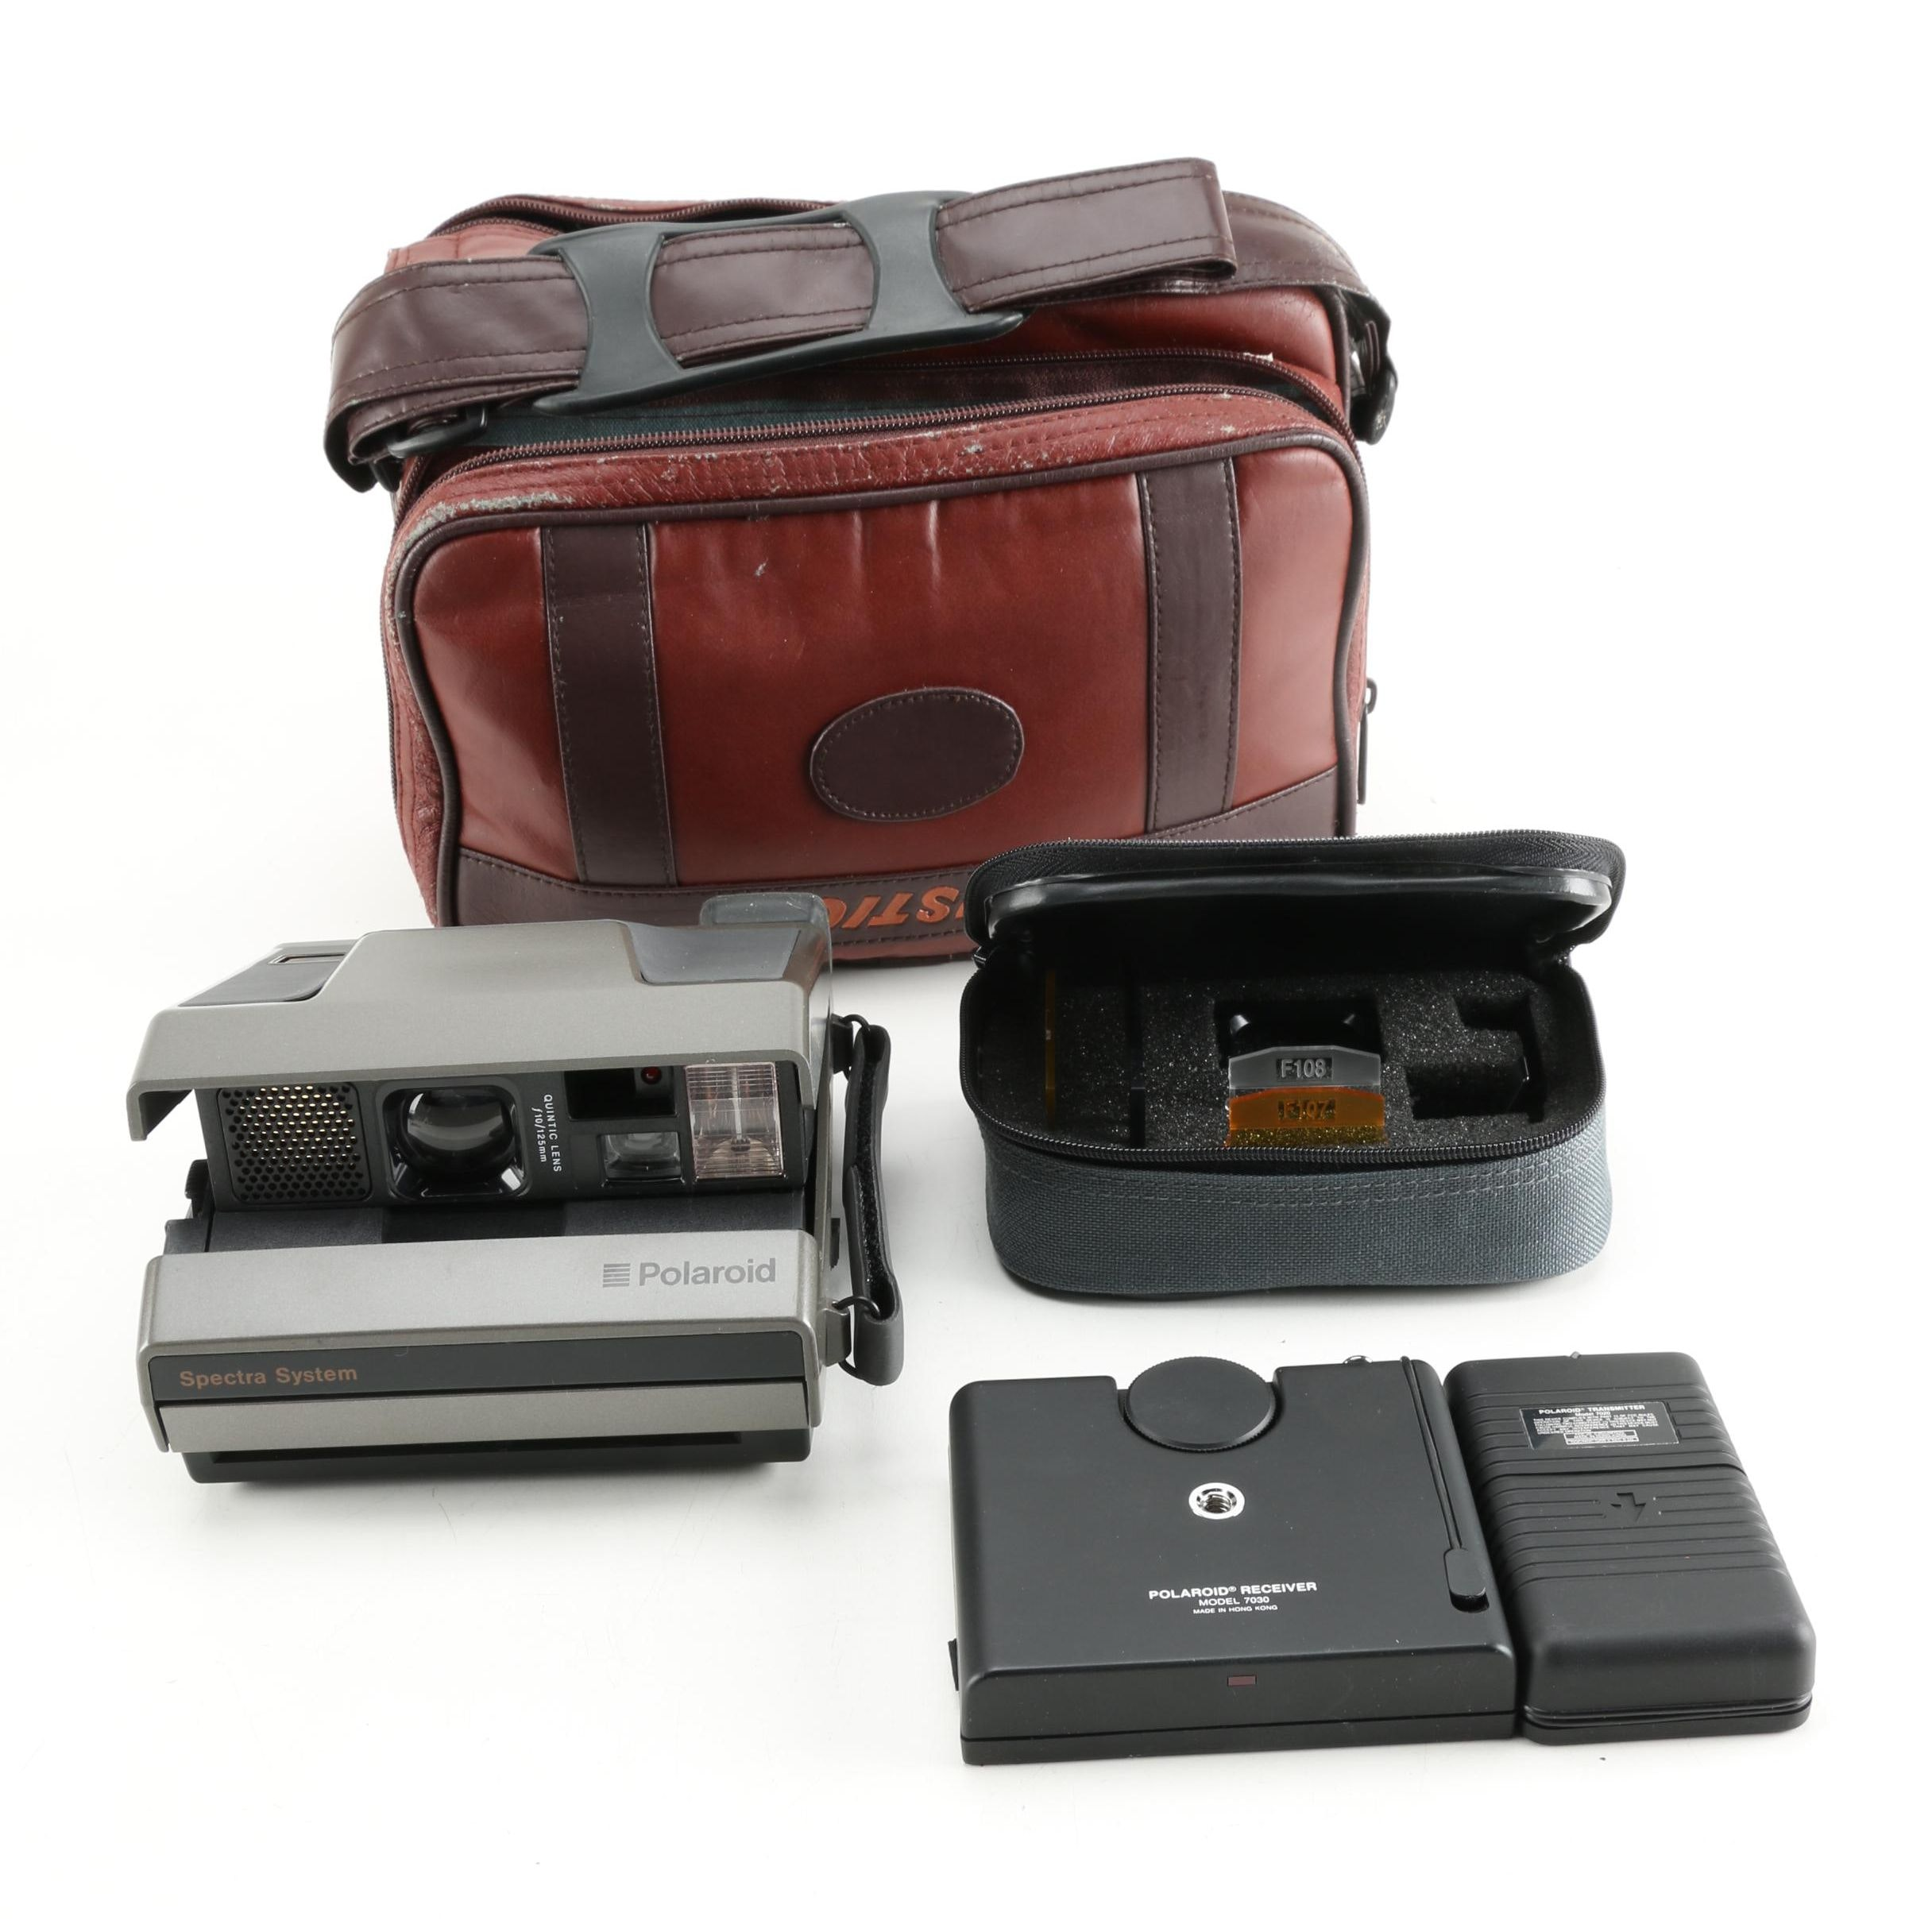 Polaroid Spectra System Camera and Accessories